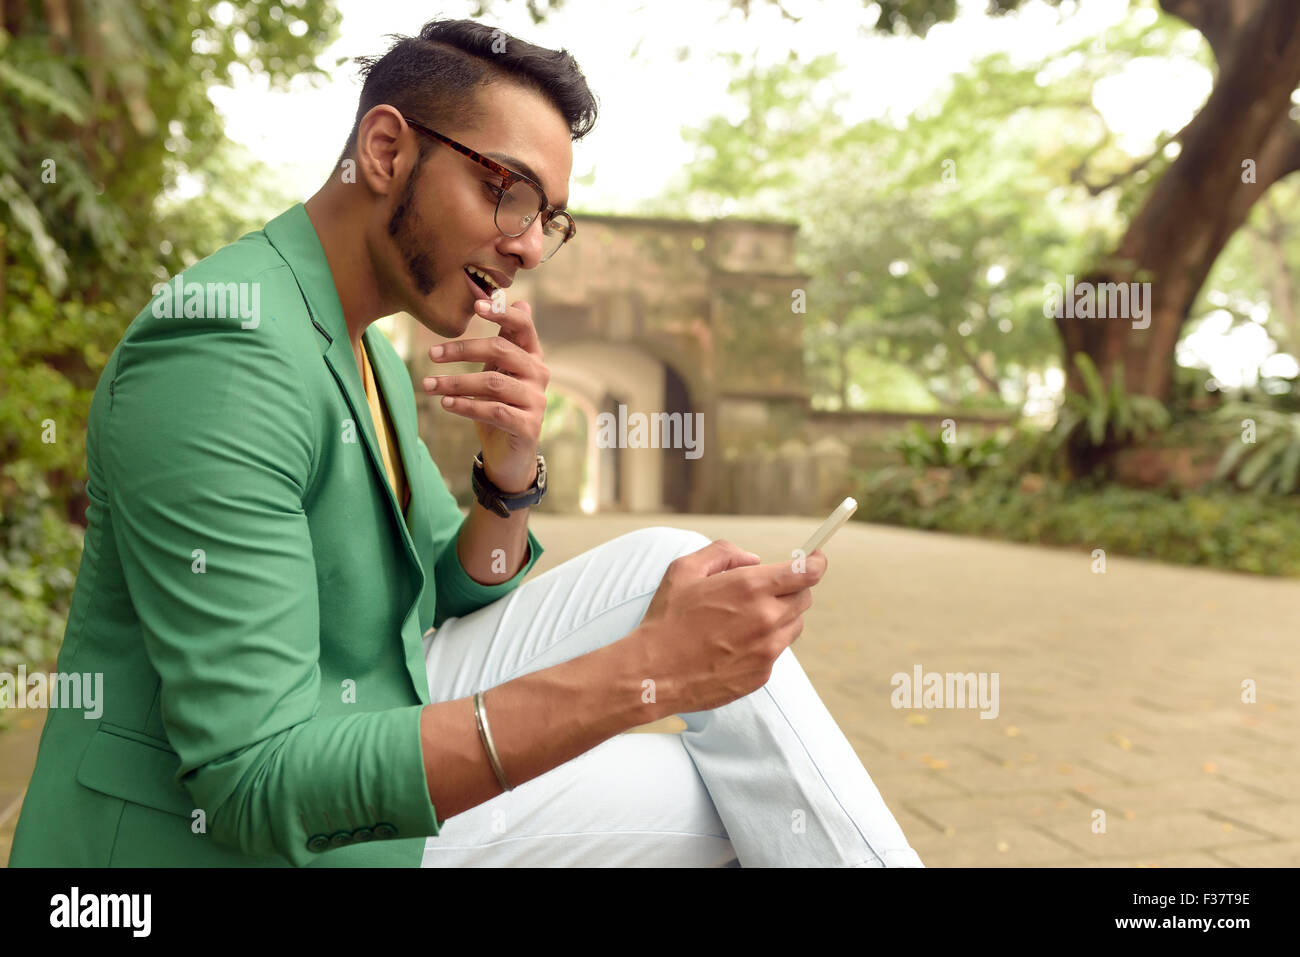 Asian , Man , Indian Ethnicities , Smart Phone , Casual Clothing , Outdoor . - Stock Image